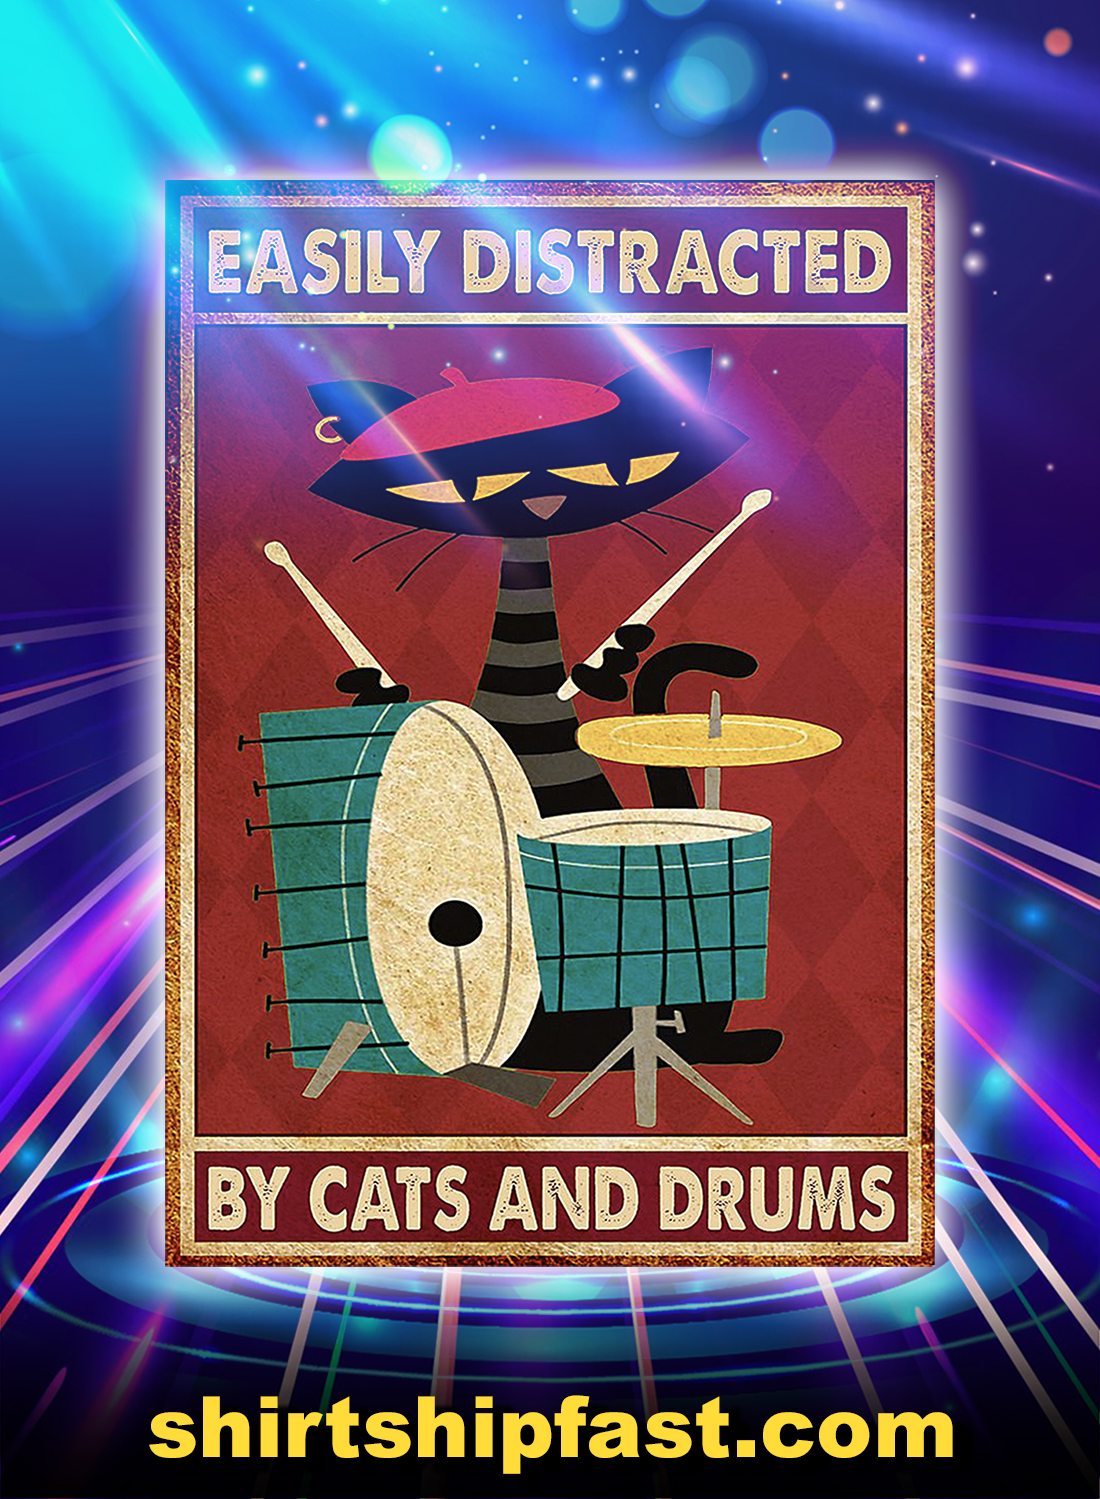 Music Cat Drum Easily Distracted Poster